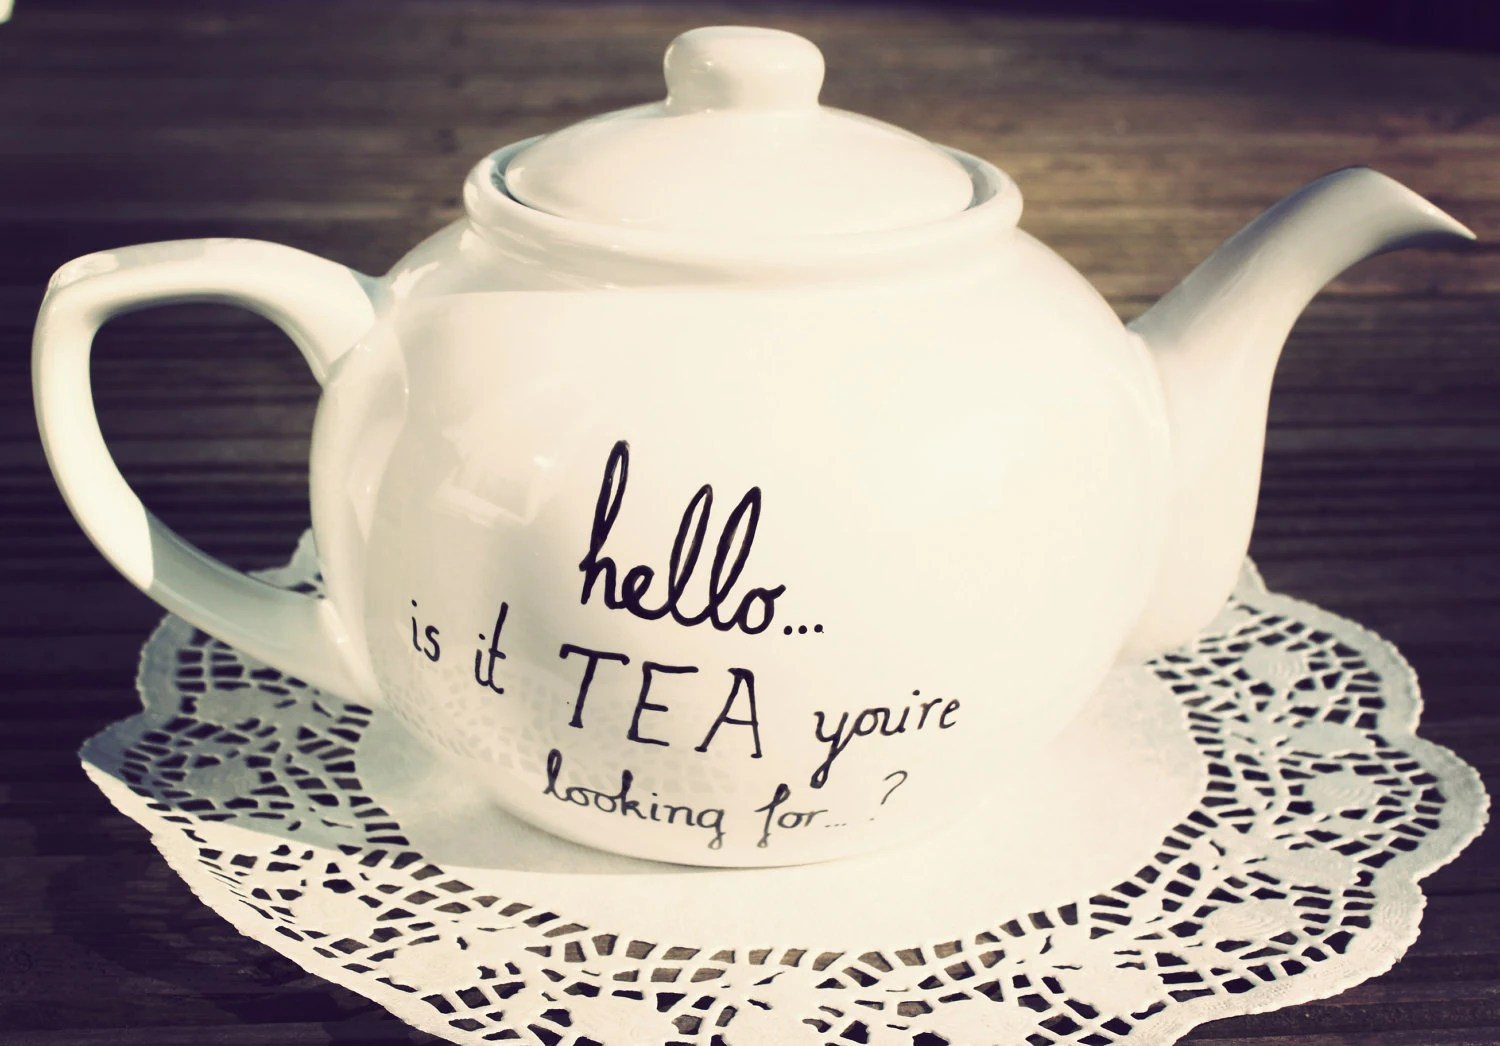 Mr. Teapot - Lionlel Richie Hello is it tea you're looking for?